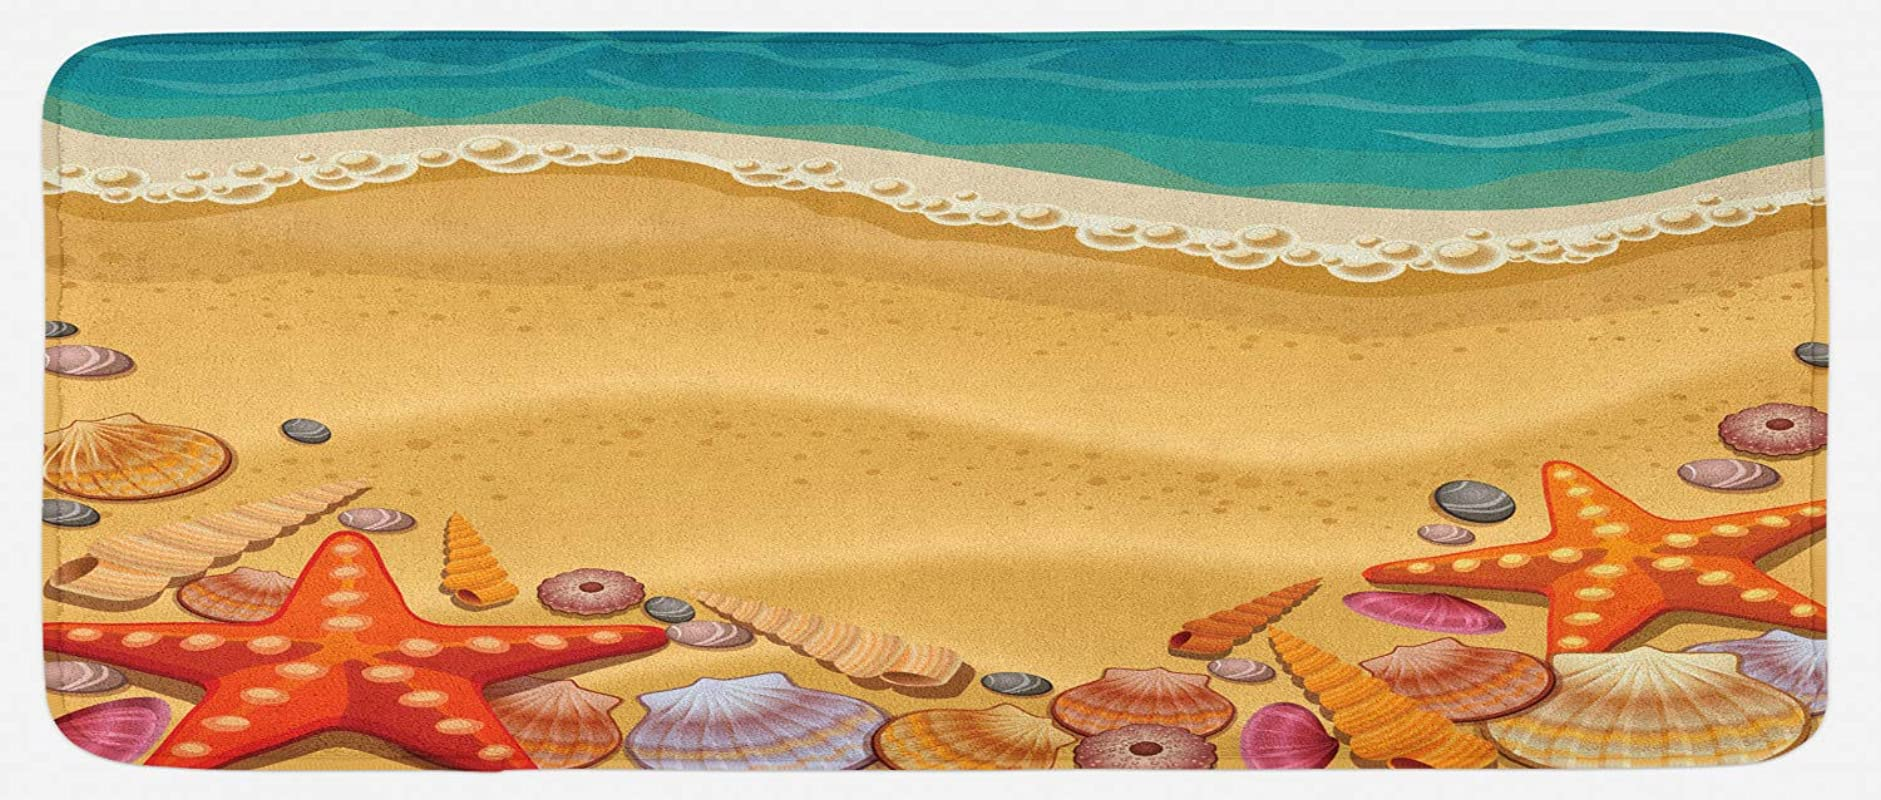 Ambesonne Seashells Kitchen Mat Seashells On The Beach Style Coastal Fun Relaxation Waves Shoreline Plush Decorative Kithcen Mat With Non Slip Backing 47 X 19 Sand Brown Orange Teal